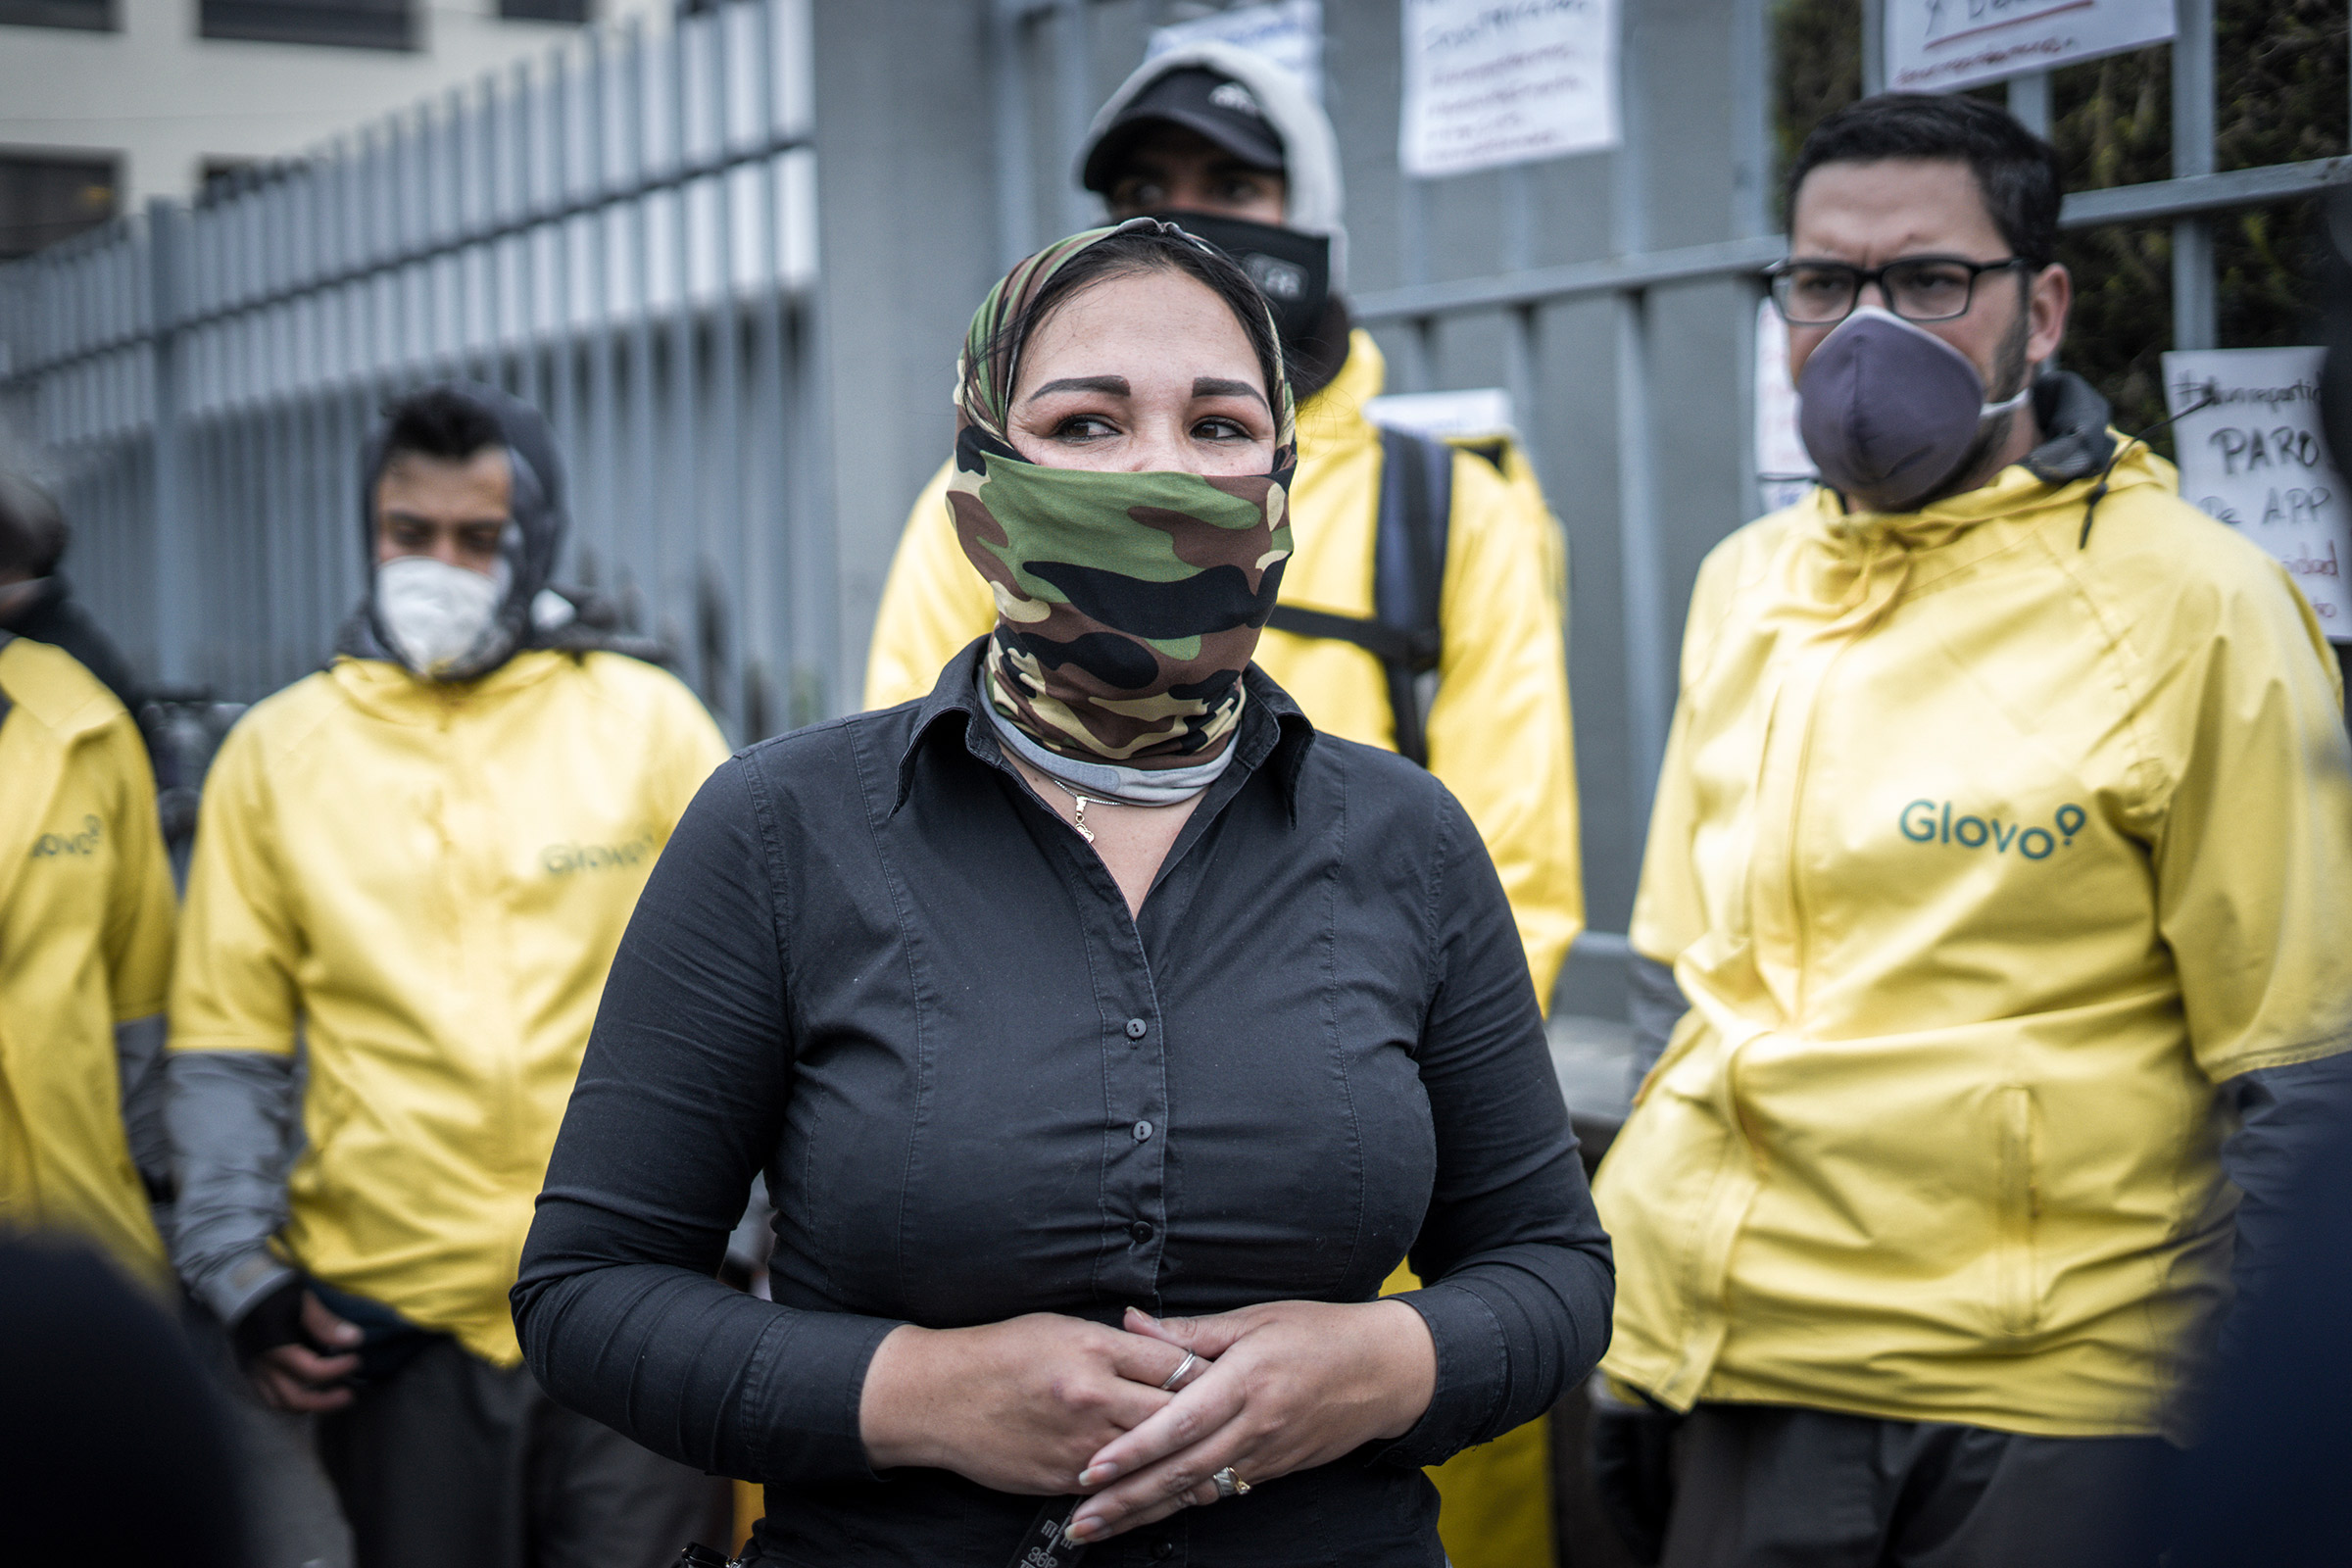 Yuly Ramírez, a mother and former lawyer from Venezuela, speaks during a global drivers protest last April in Quito, Ecuador. Ramírez has become an organizer and spokesperson demanding drivers' rights.